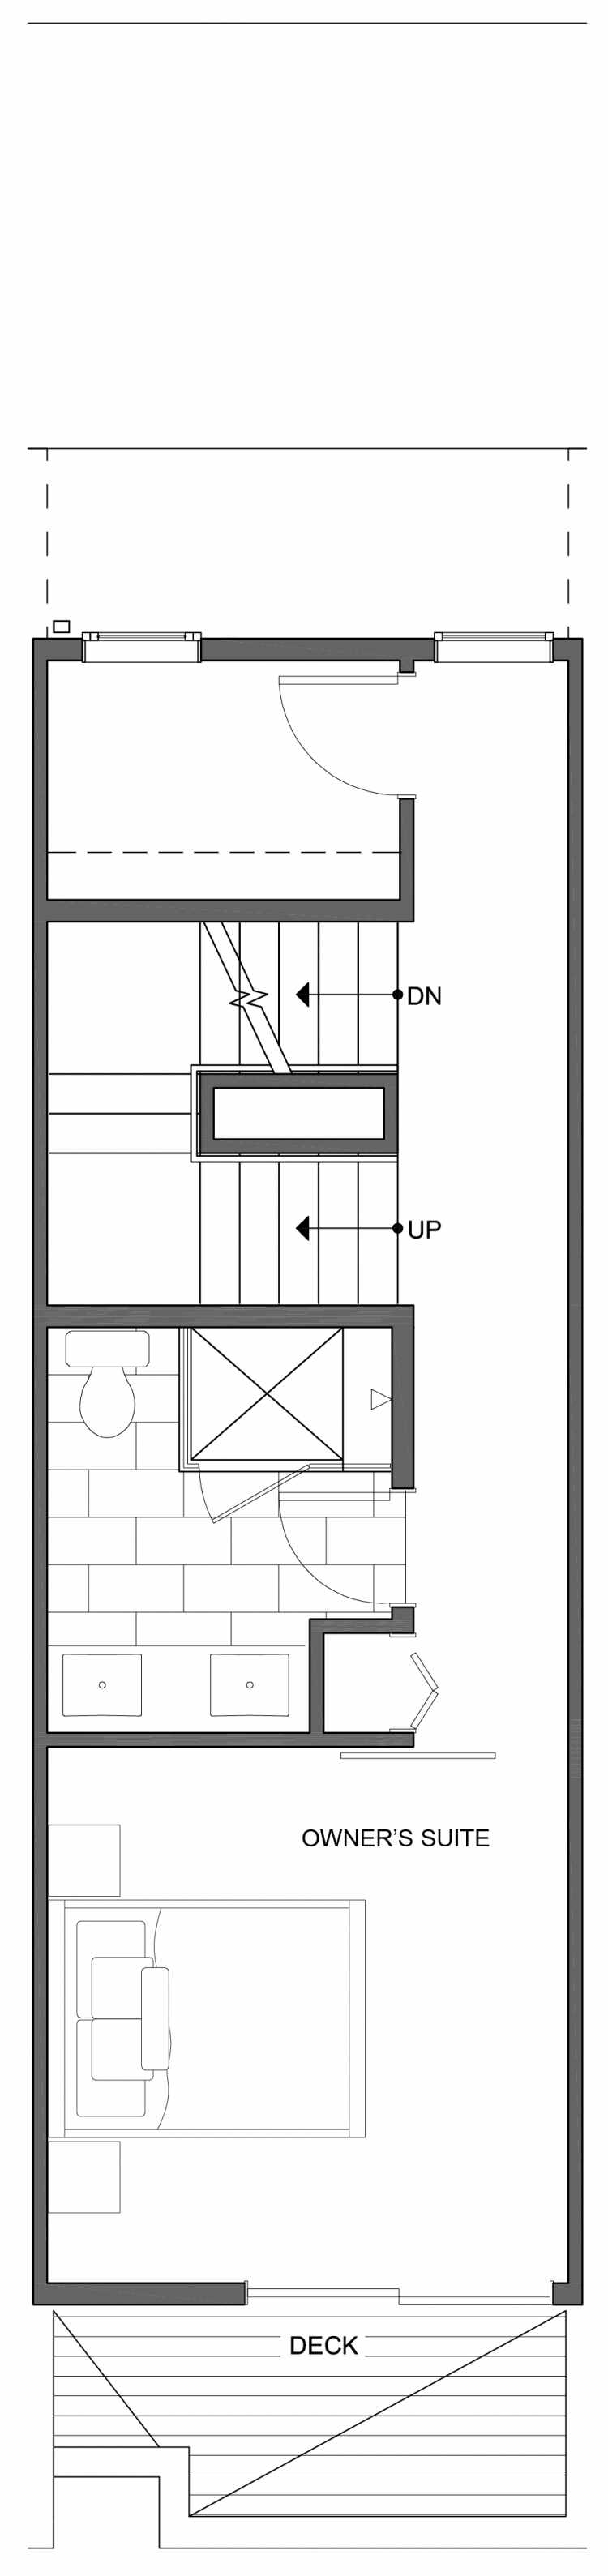 Fourth Floor Plan of 806E N 46th St, One of the Nino 15 East Townhomes by Isola Homes